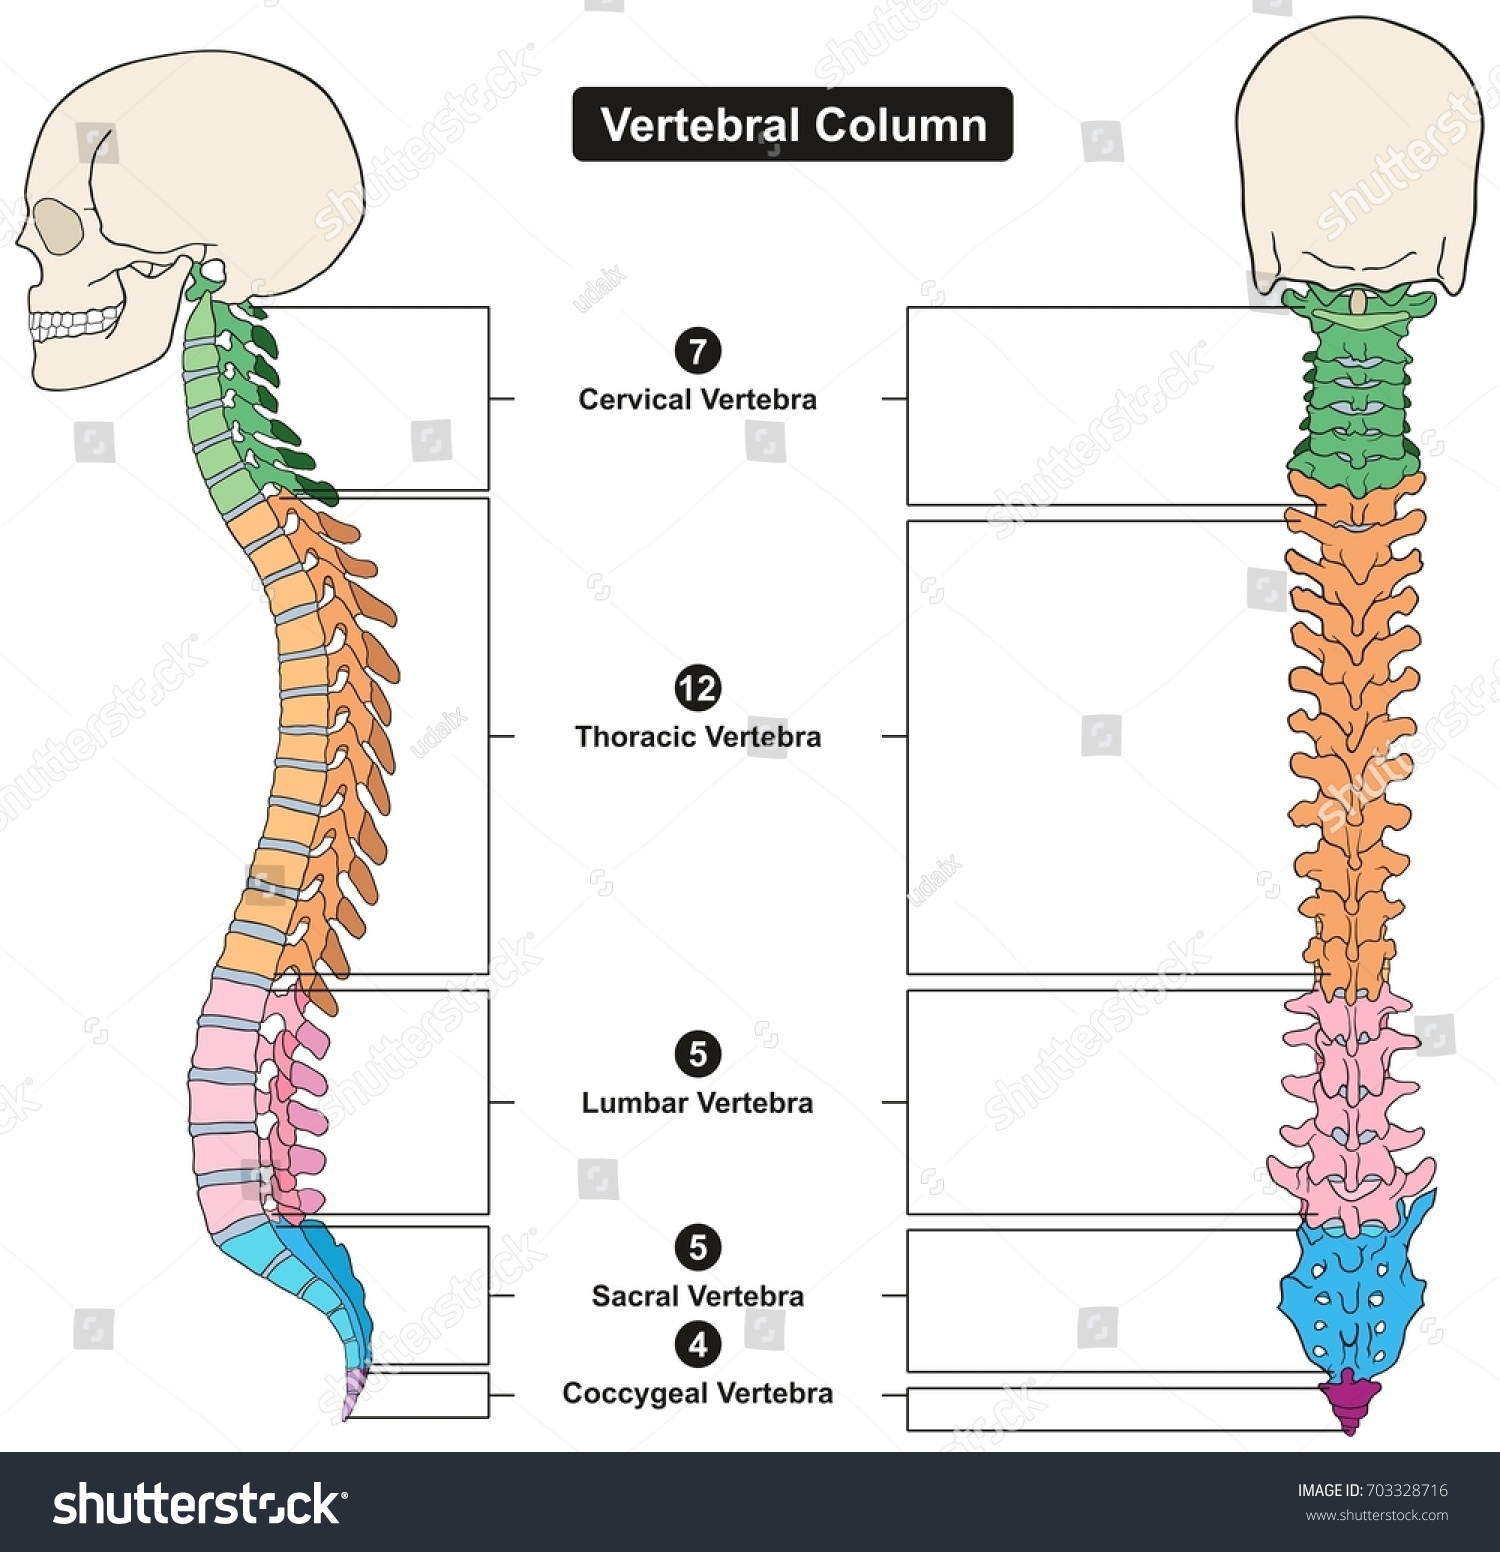 typical thoracic vertebrae diagram parts of a volcano vertebral column human body anatomy infograpic stock